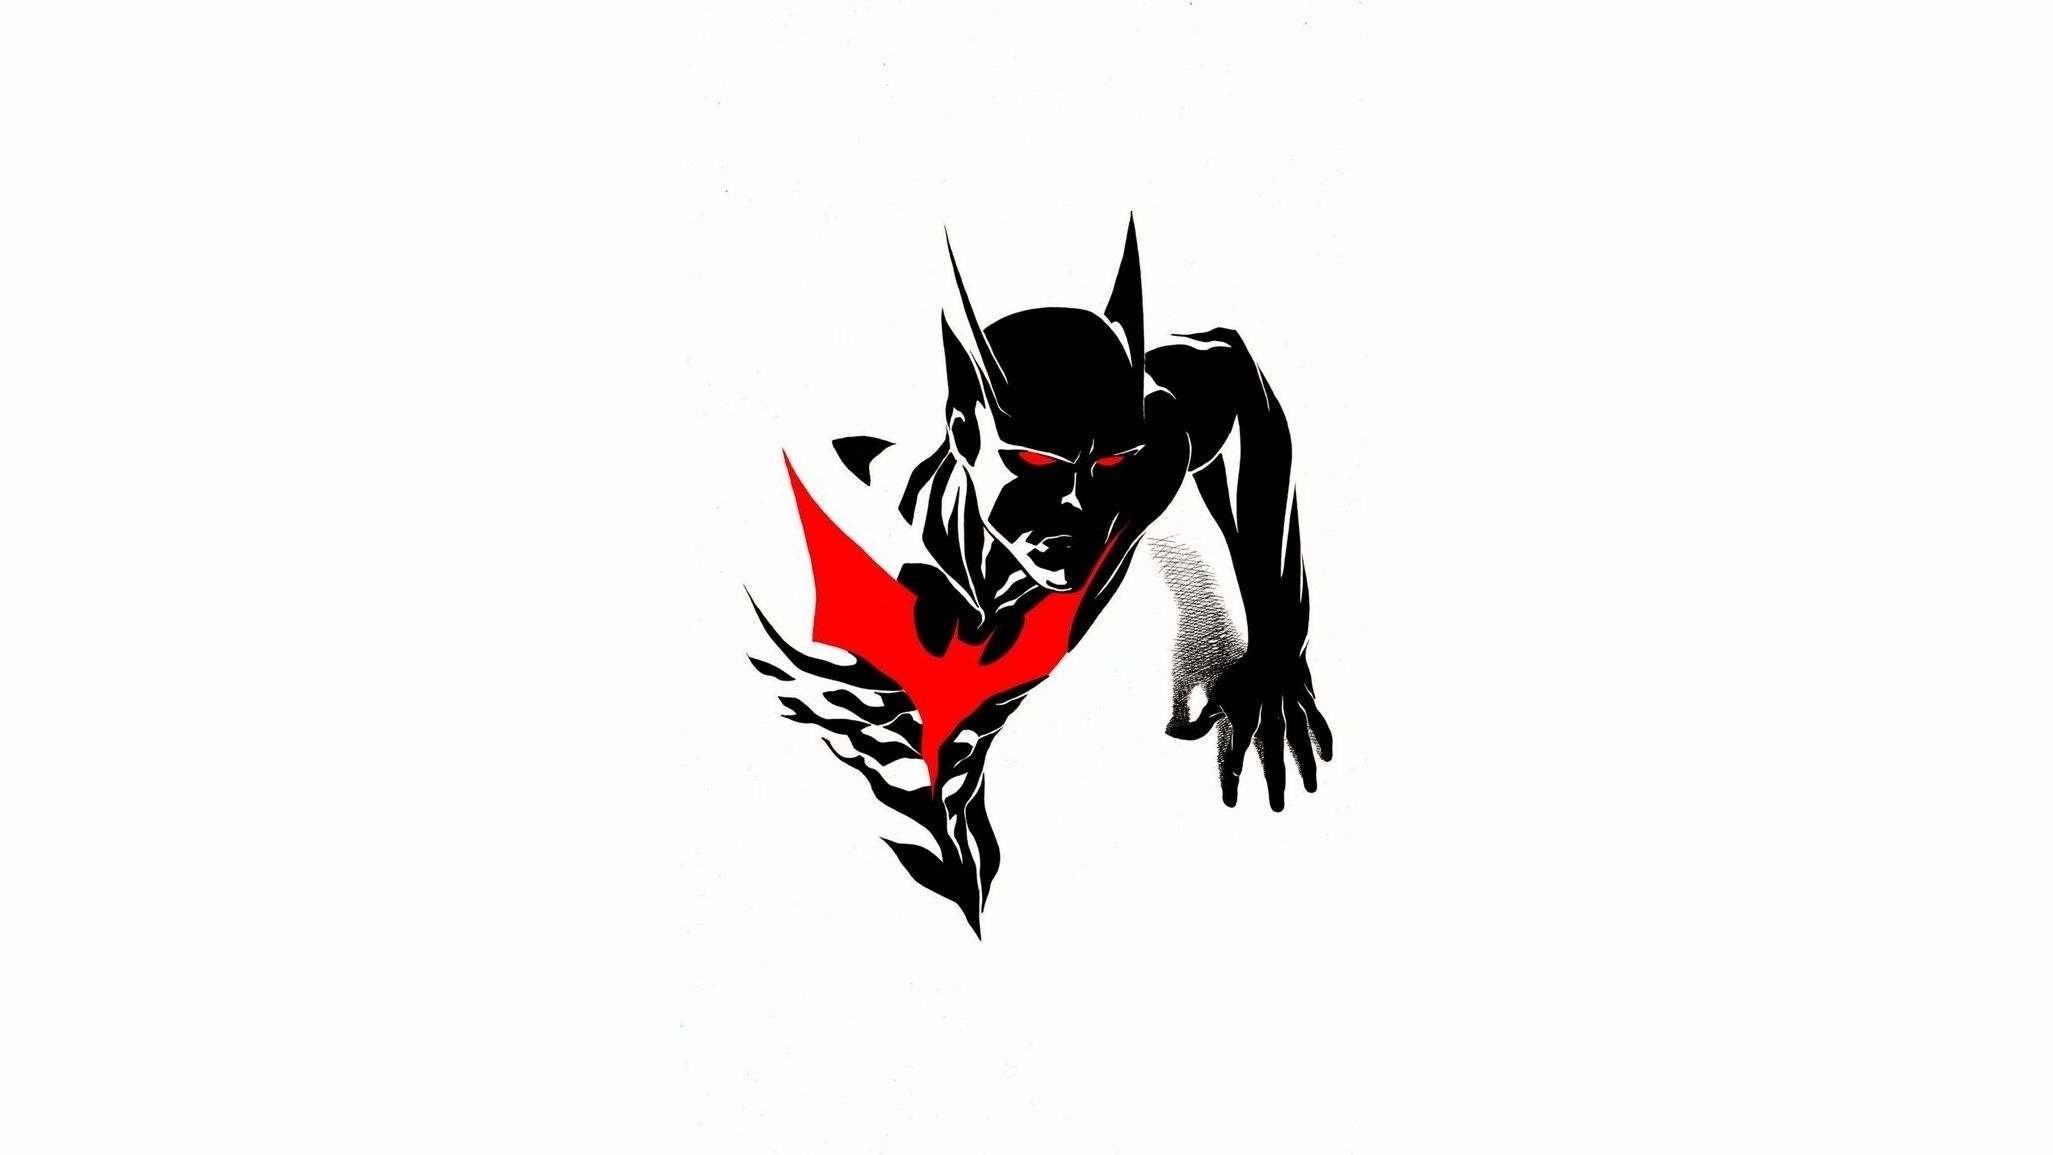 Free desktop pictures batman beyond